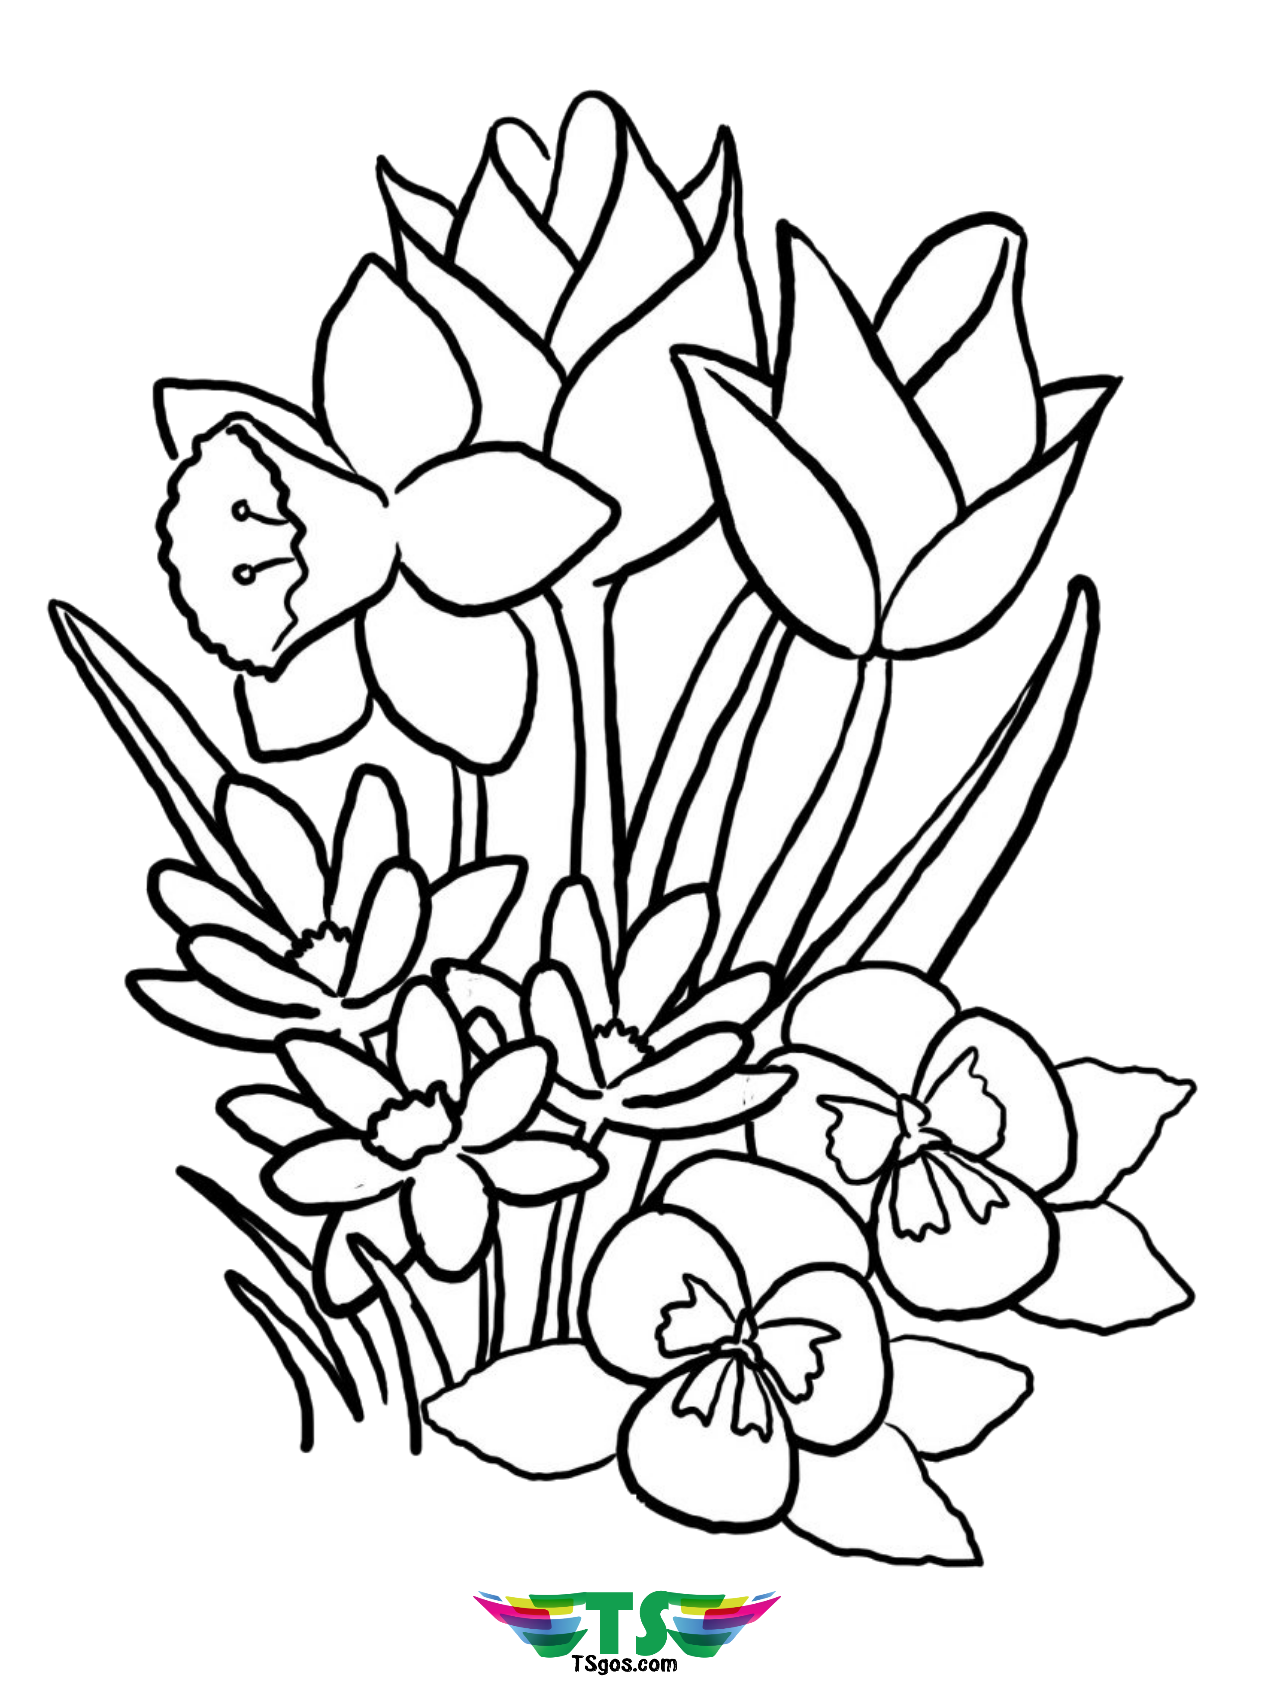 picture of a flower to color small flower coloring pages at getcoloringscom free flower to a color picture of